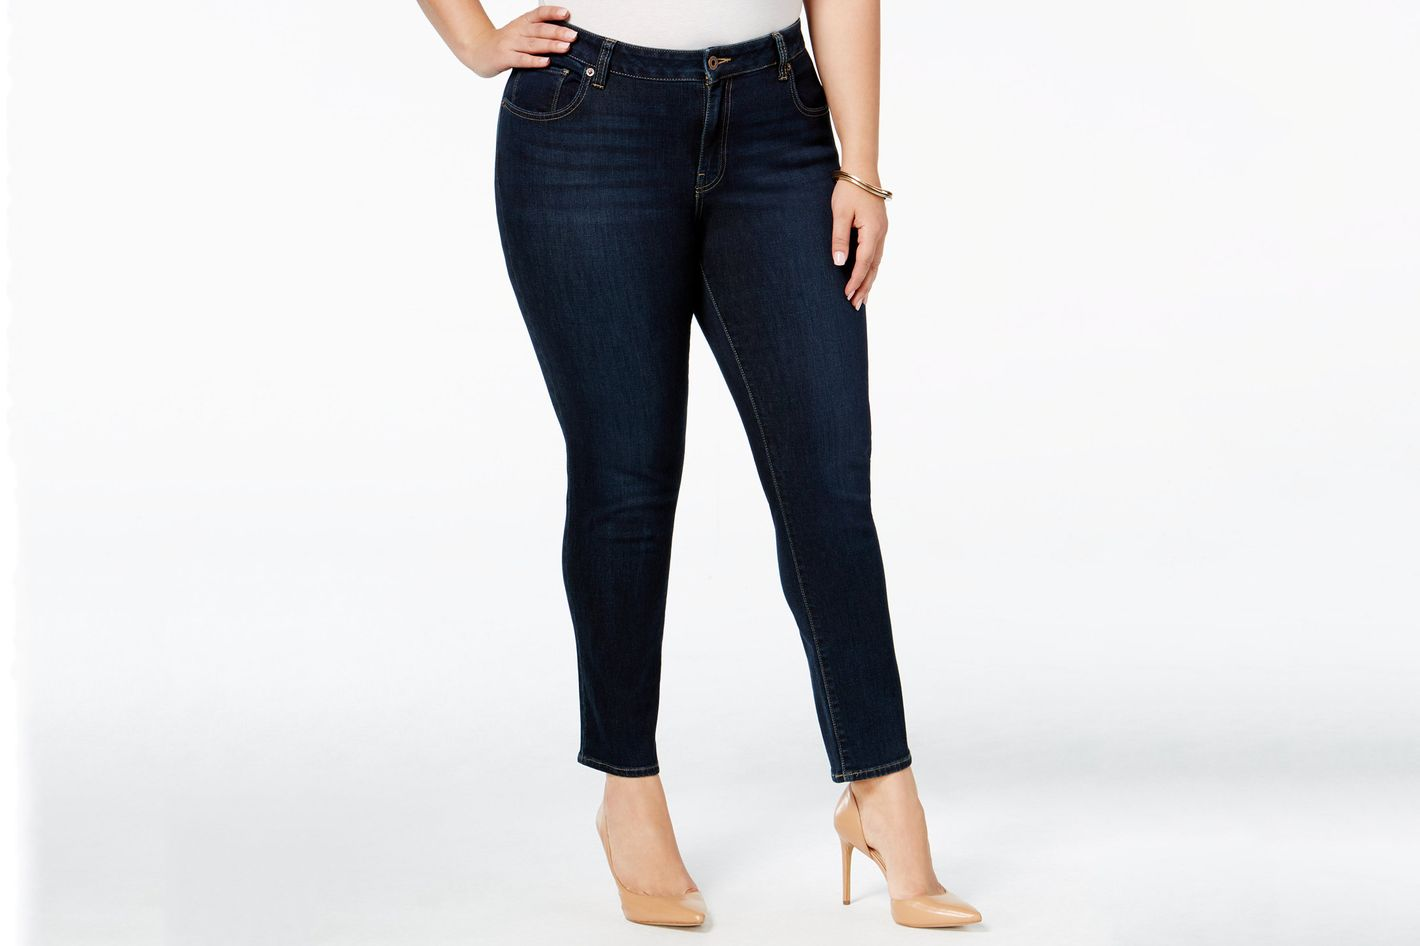 39aa216a82c03 10 Best Plus-Size Jeans According to Real Women 2018